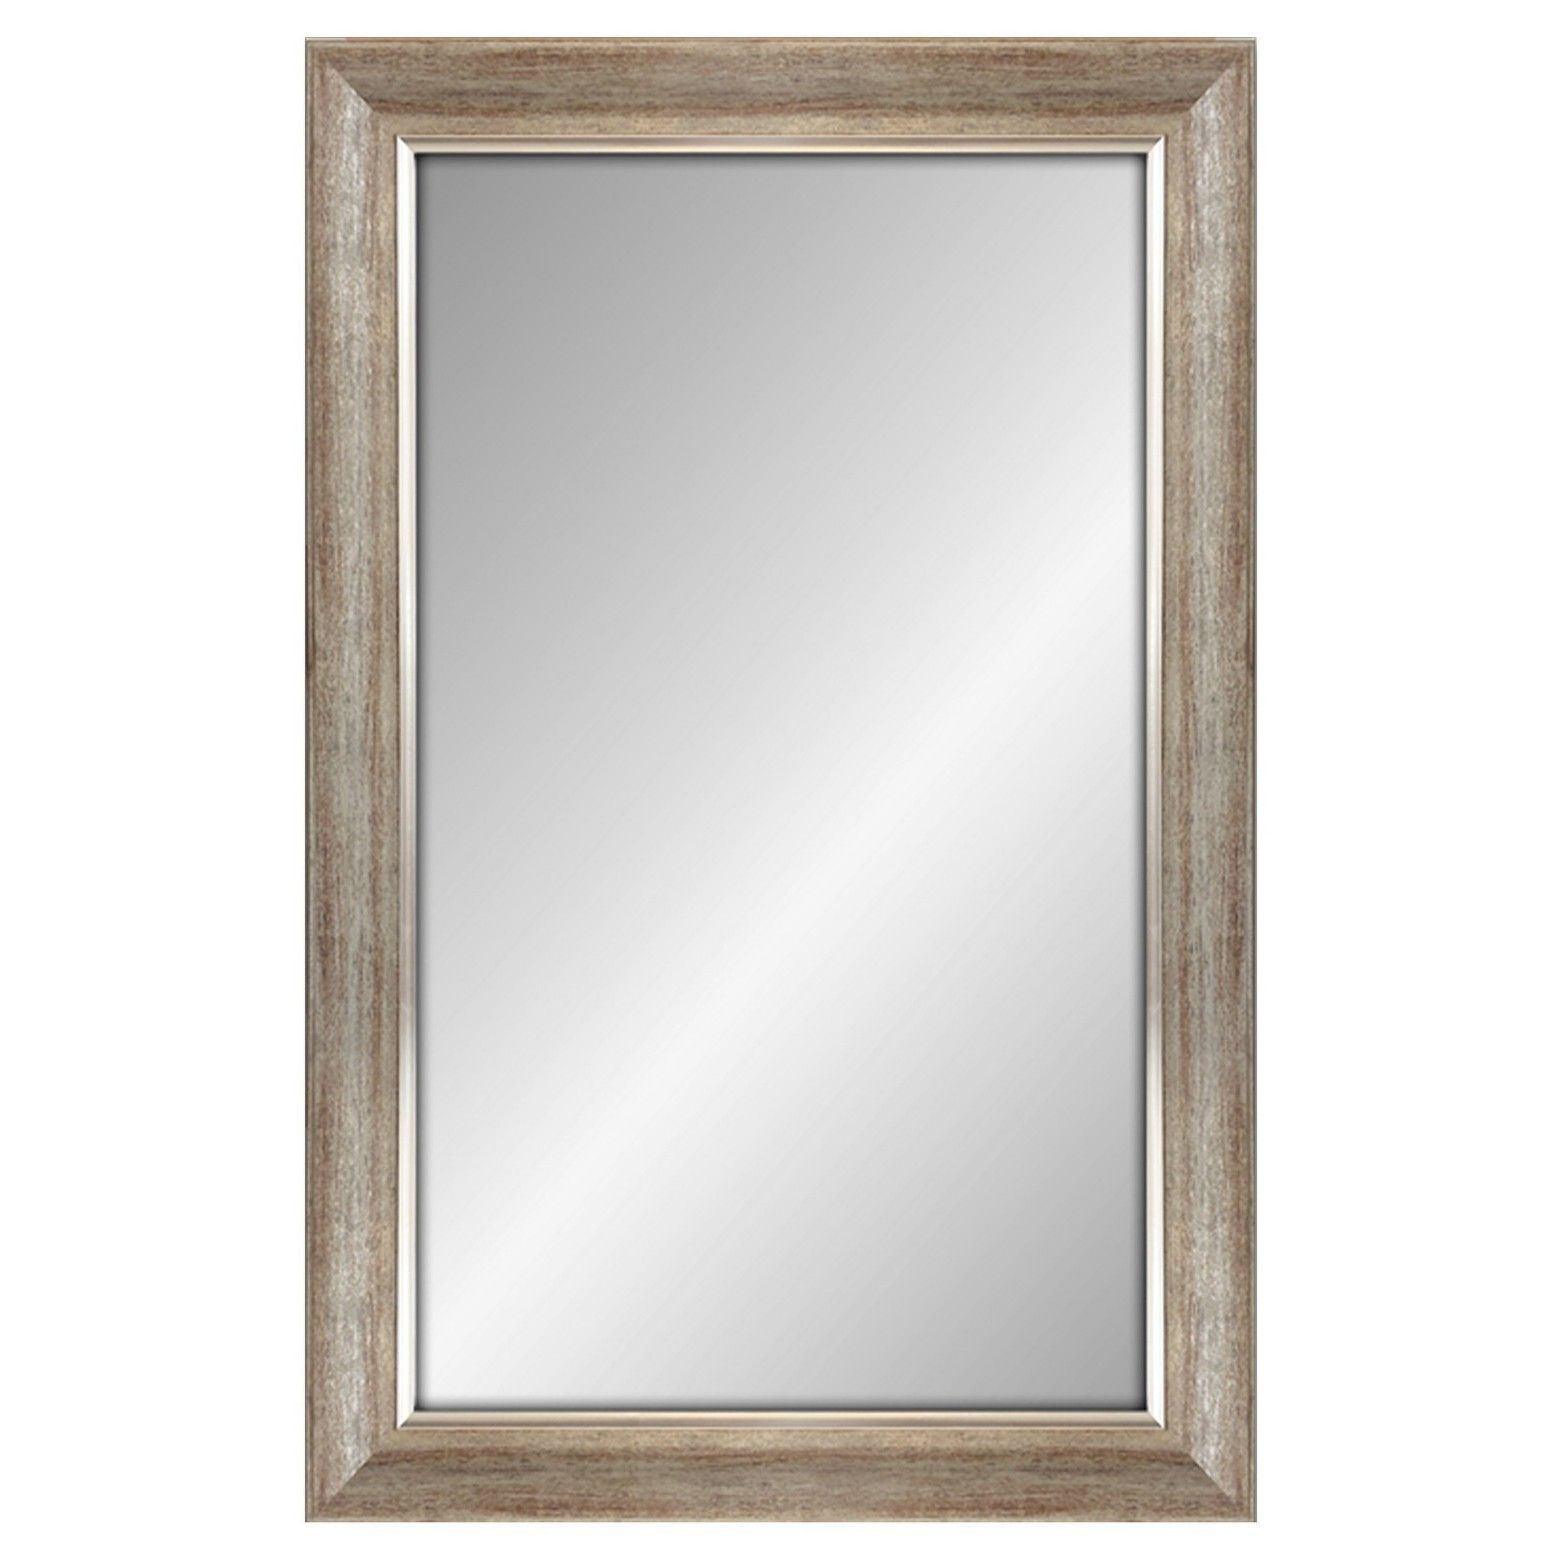 Rectangular Mirror Dark Silvertone Finish With Silver Filet Within Rectangle Ornate Geometric Wall Mirrors (Photo 11 of 20)